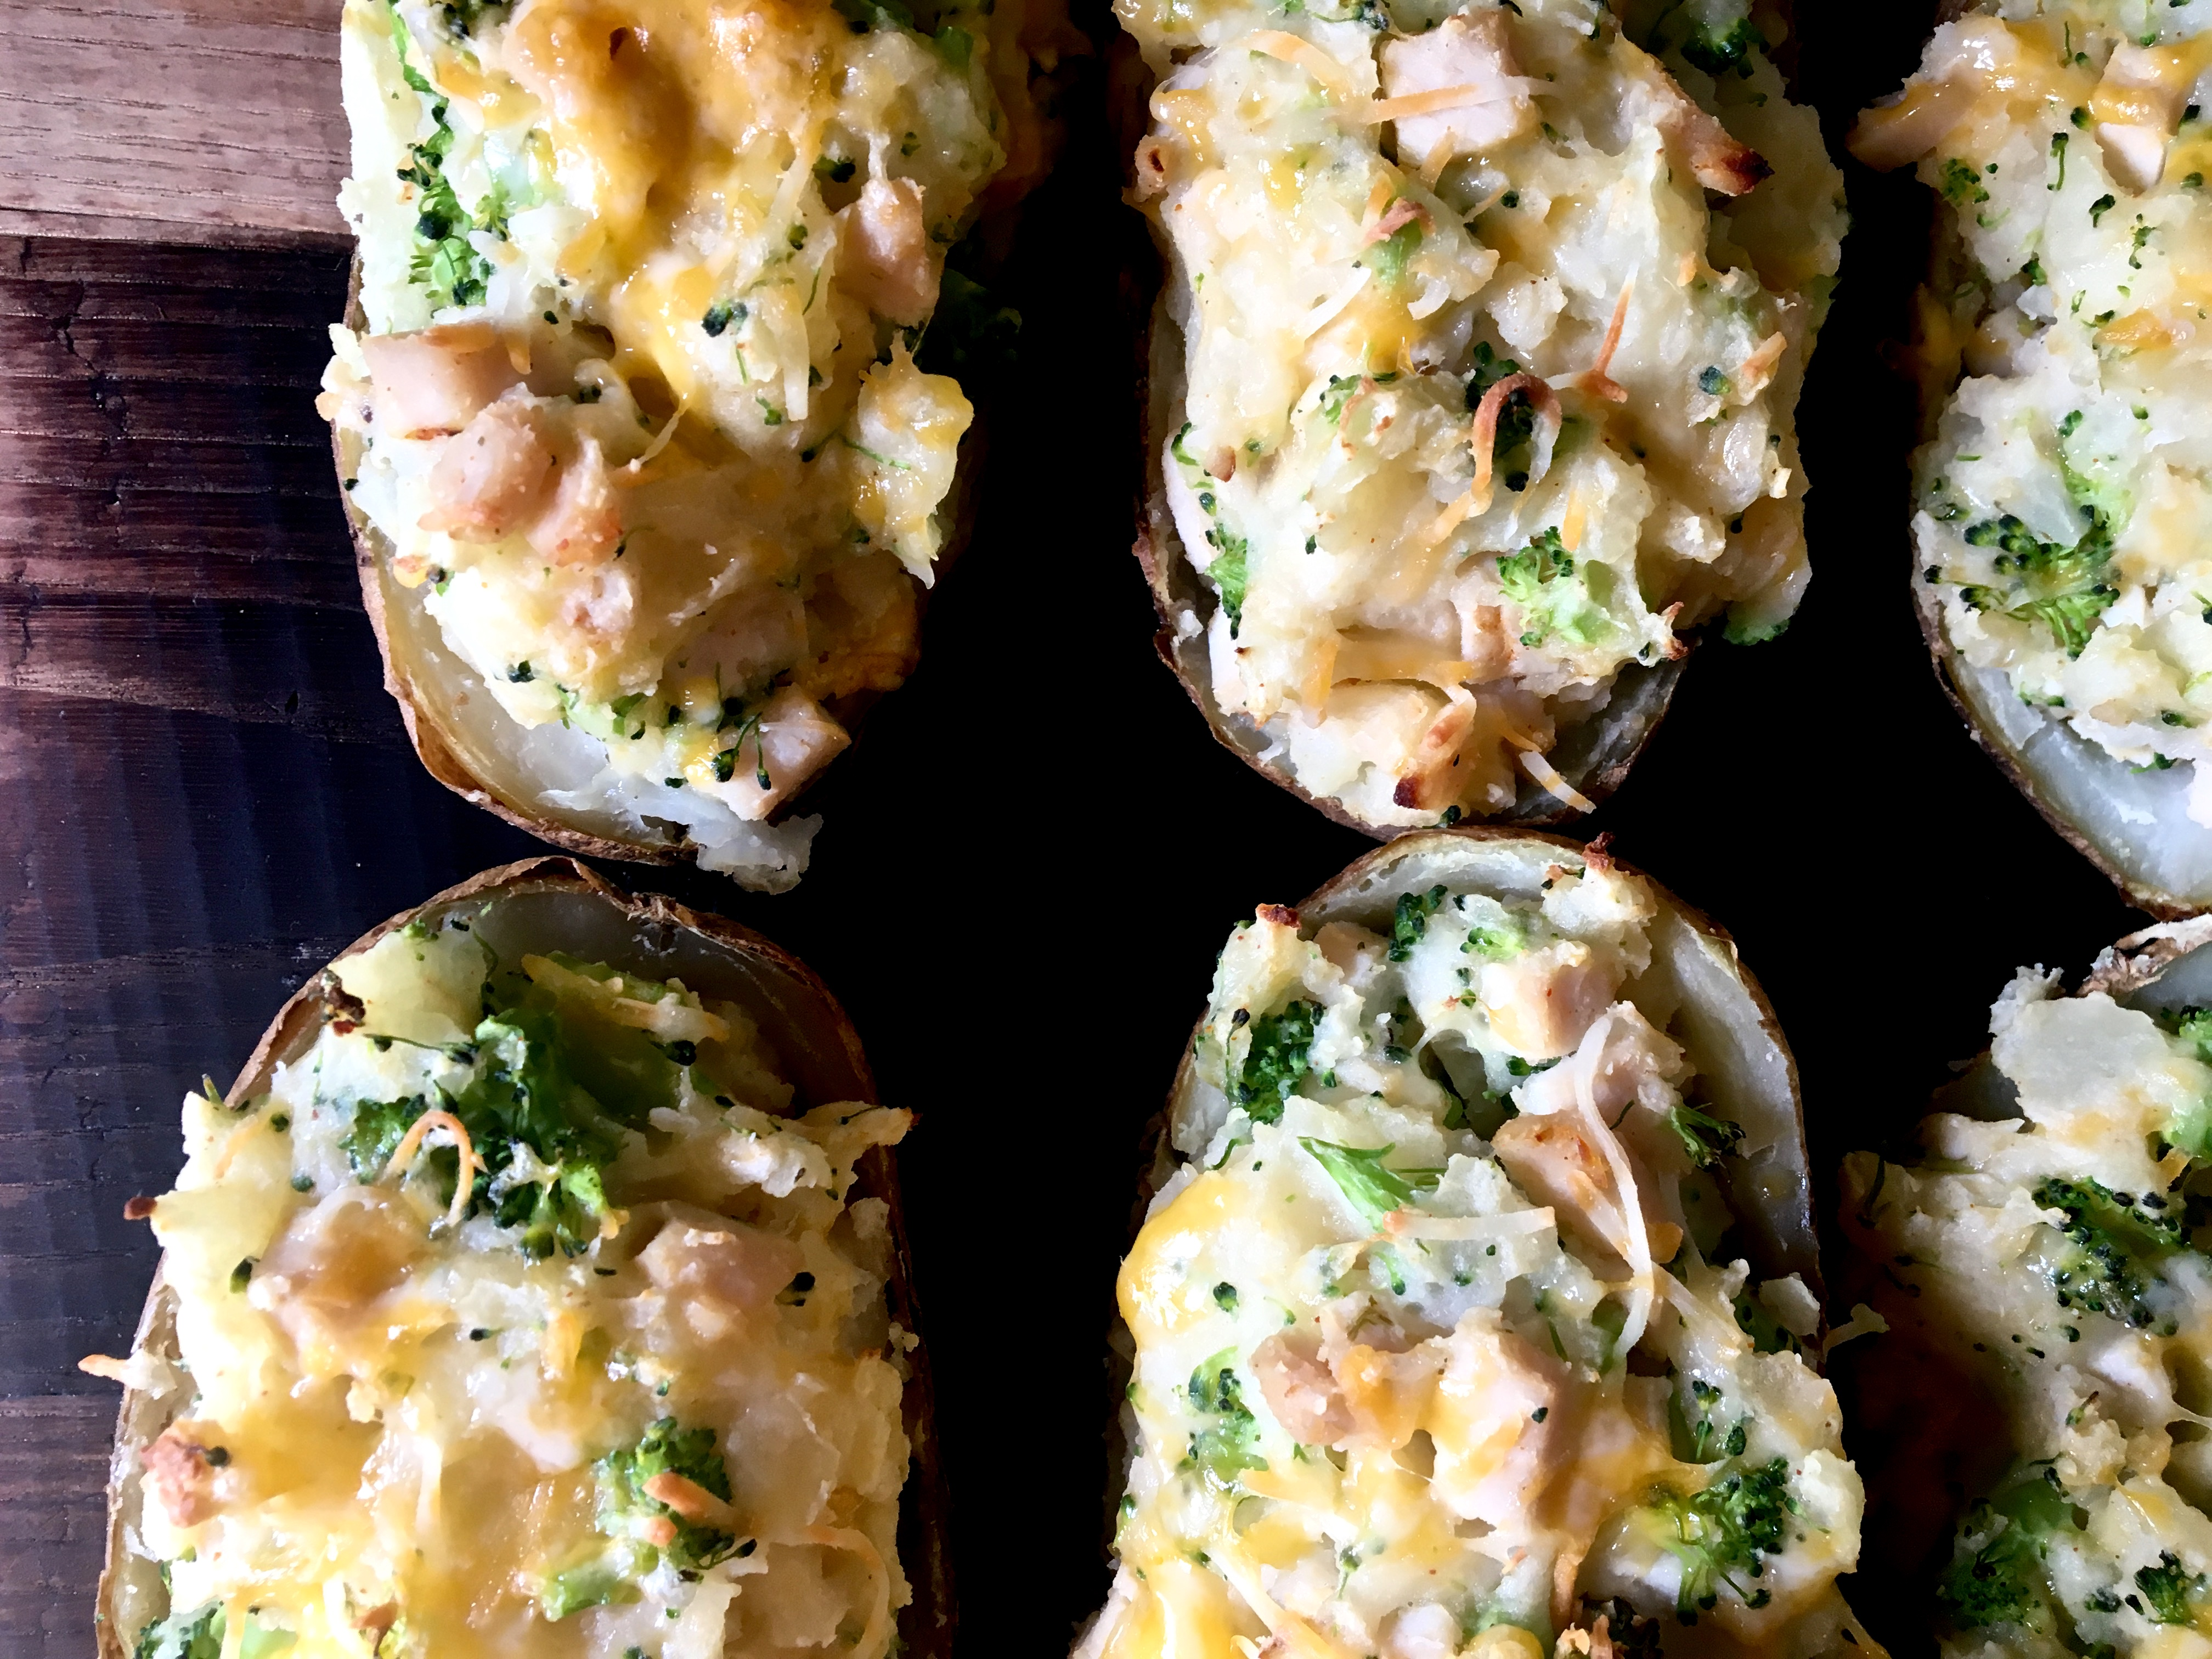 Turkey Cheddar Broccoli Stuffed Potatoes